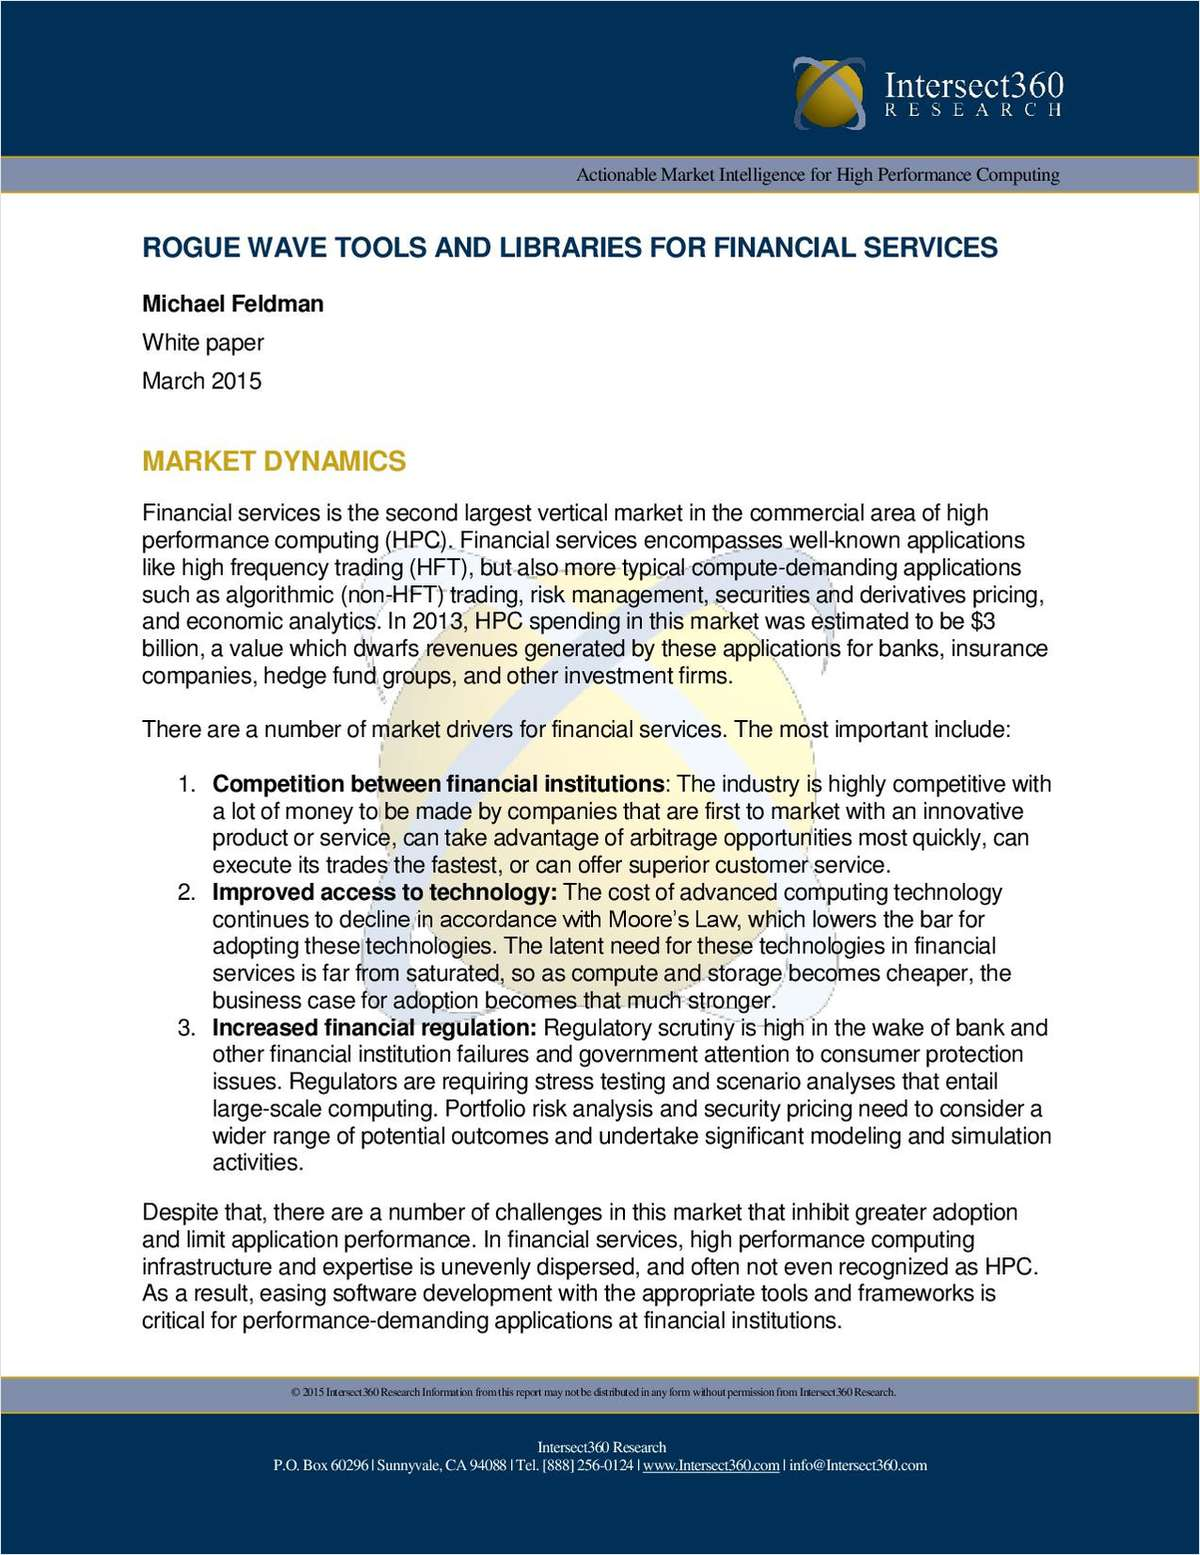 Rogue Wave tools and libraries for financial services